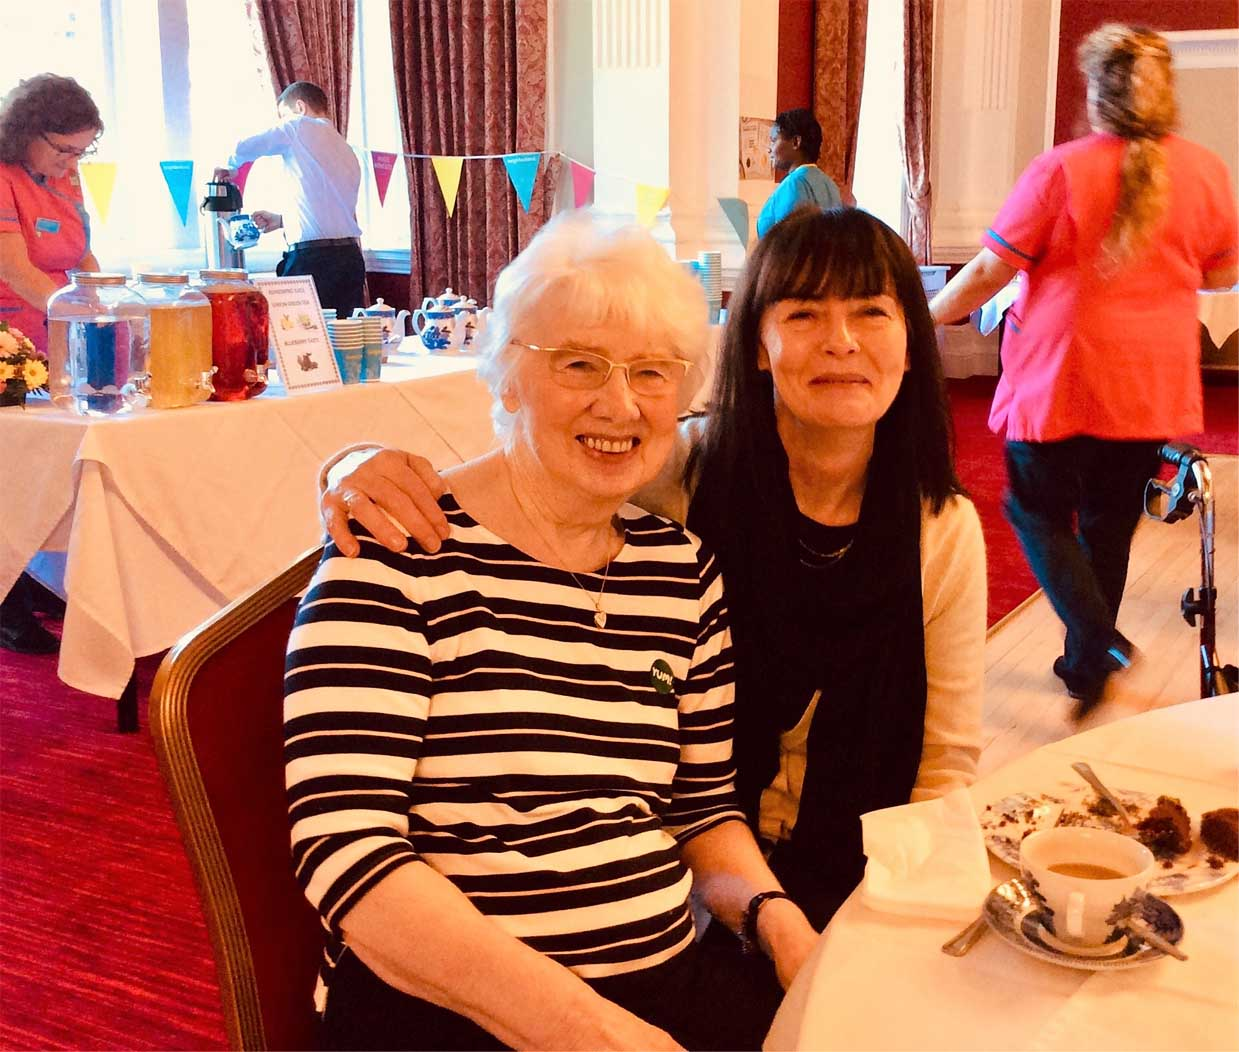 The Granby Care Home's Bake Off for Macmillan Cancer Support - Margaret Atkinson with her daughter Lesley enjoy the day